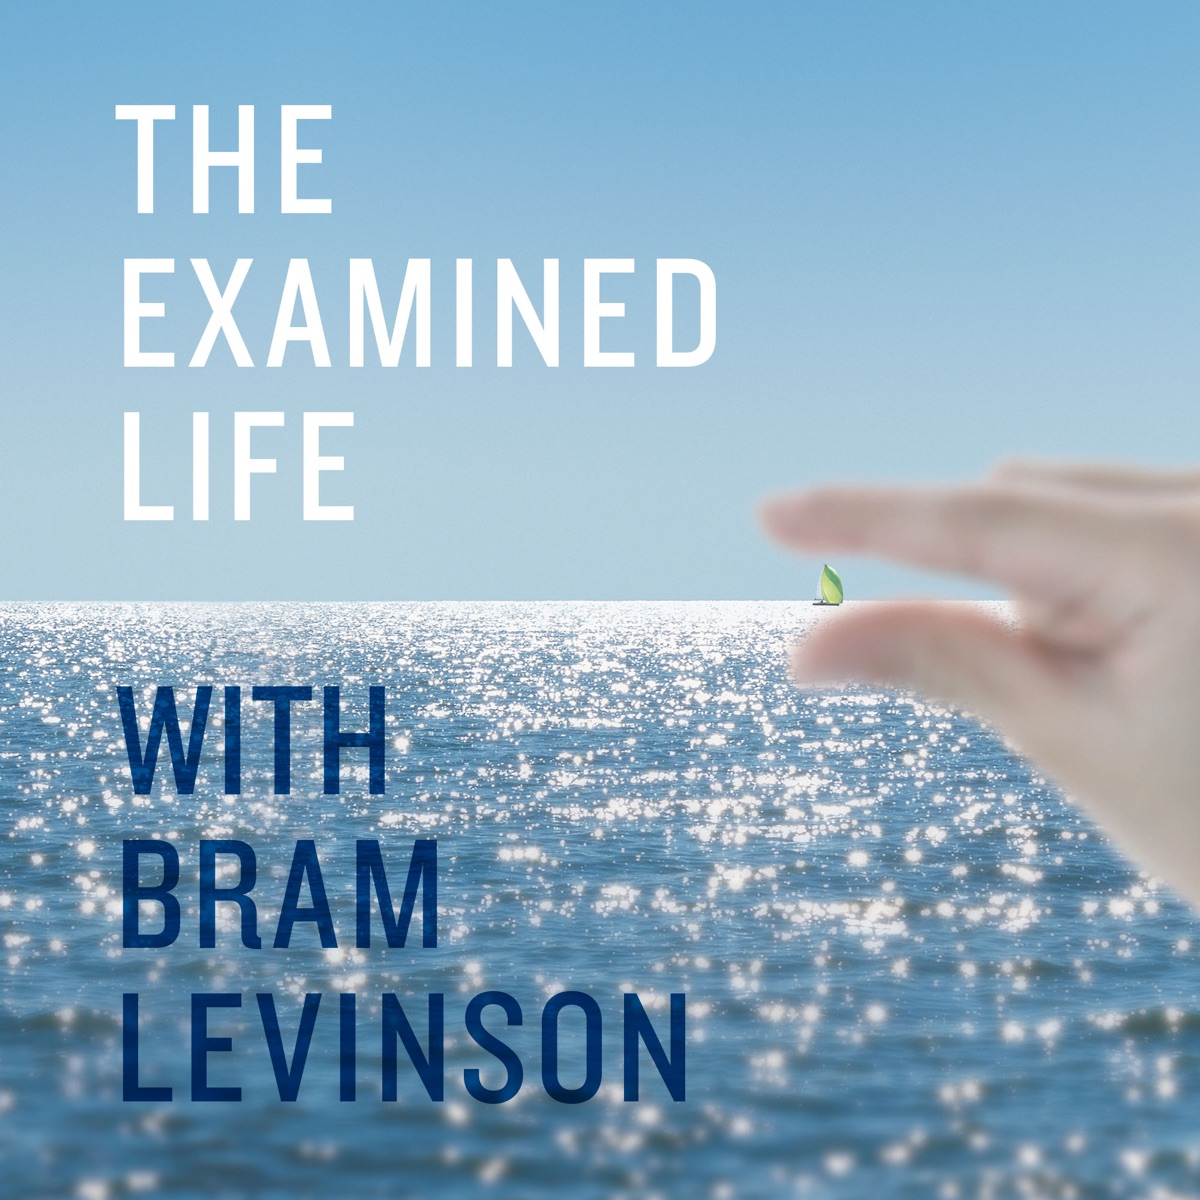 The Examined Life with Bram Levinson